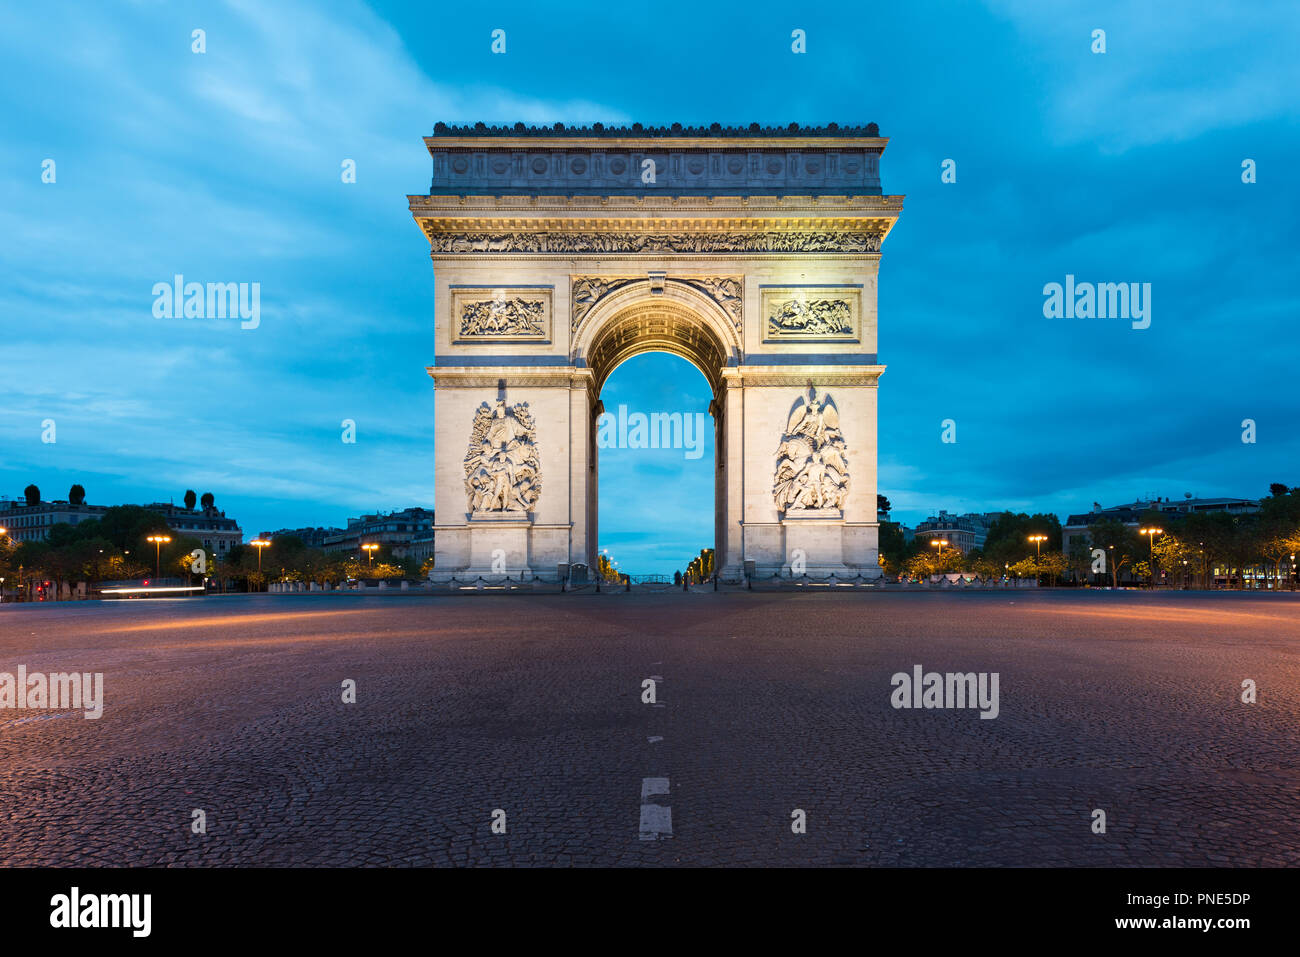 Arc de Triomphe and Champs Elysees, Landmarks in center of Paris, at night. Paris, France - Stock Image